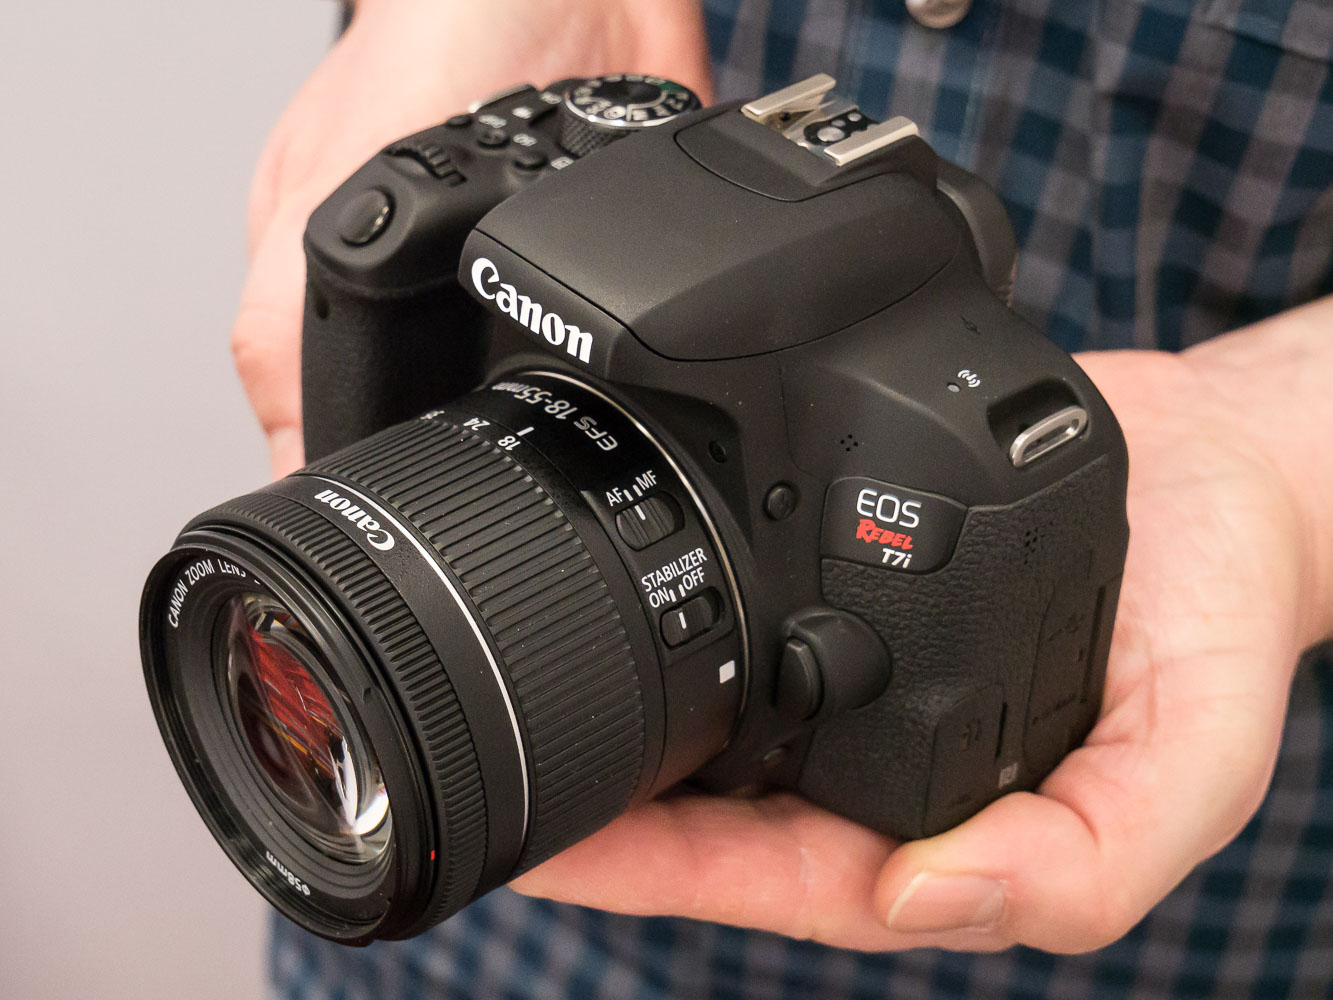 Hands On With The Canon Eos Rebel T7i Eos 800d Digital